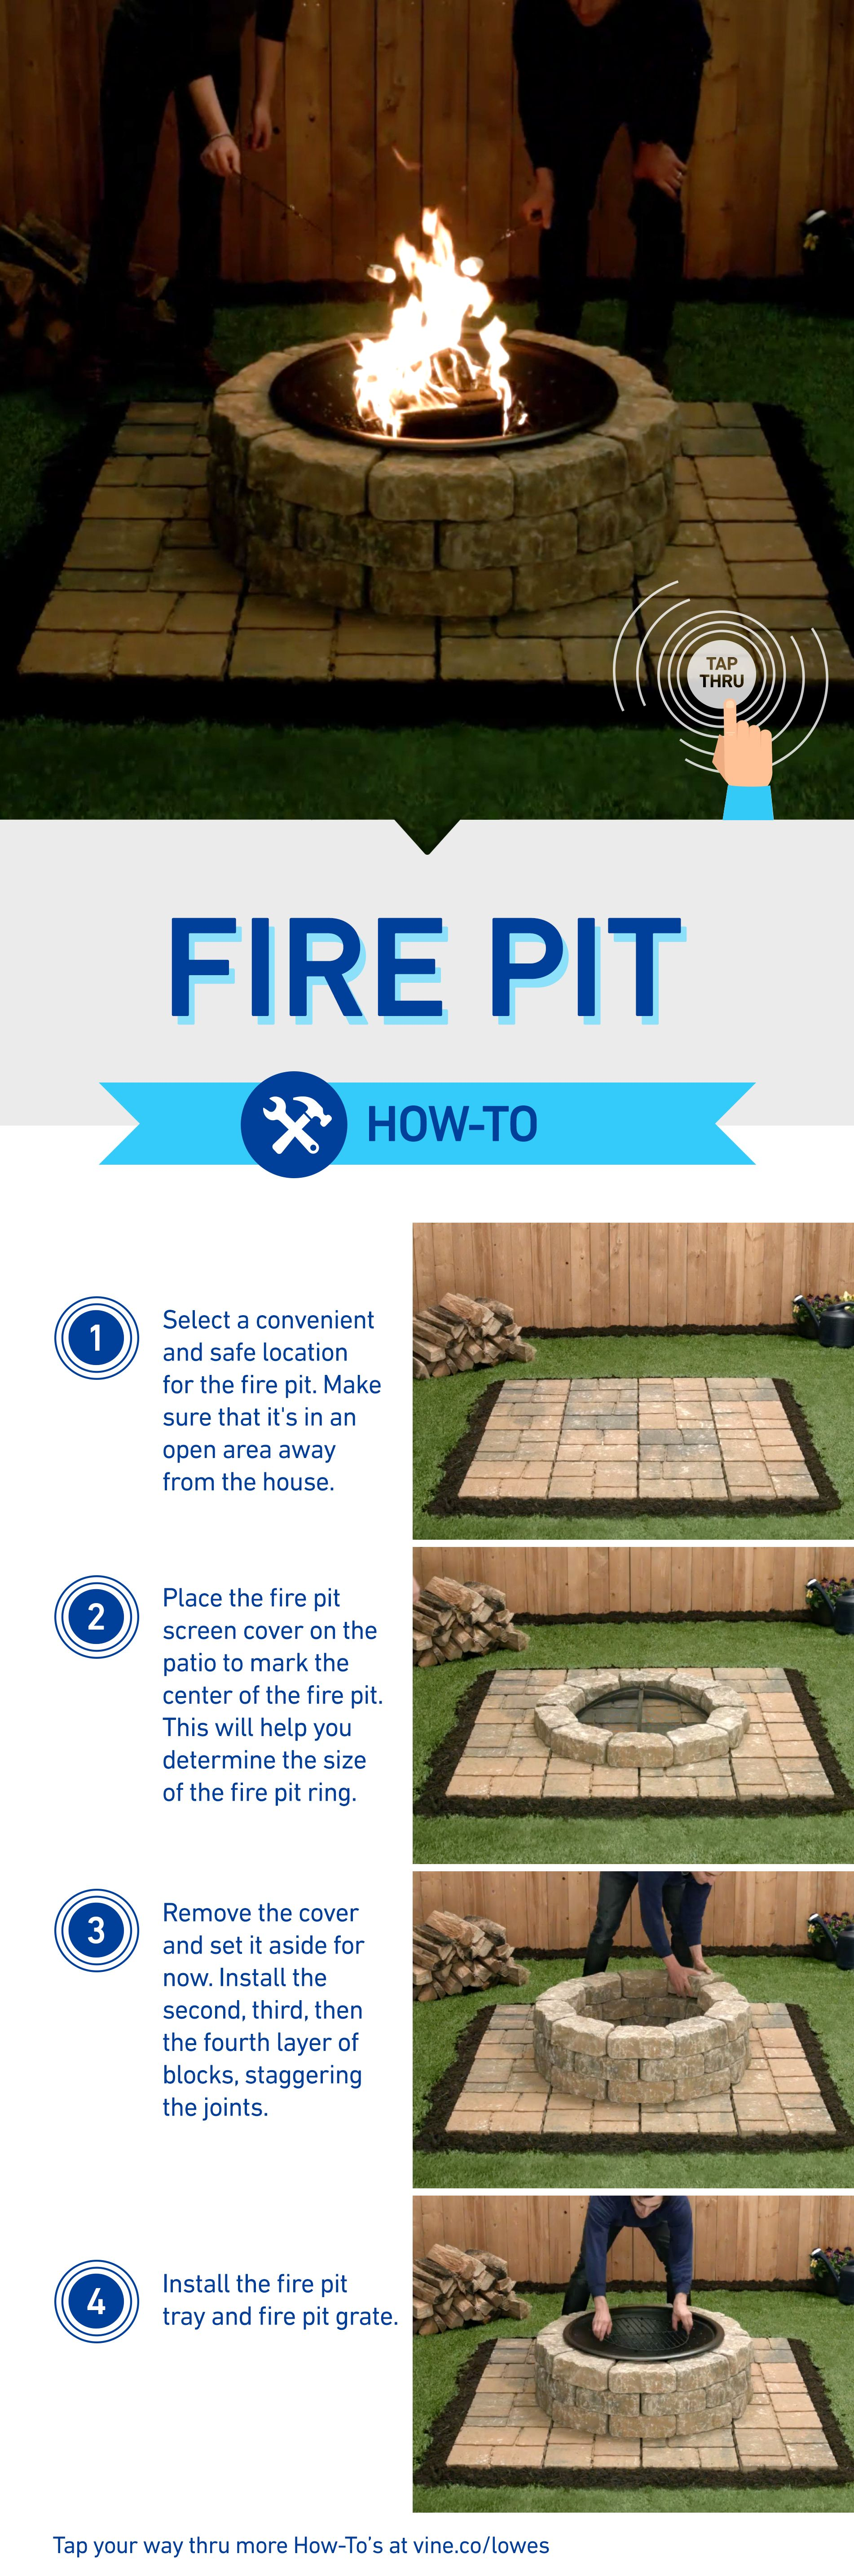 Lowes Backyard Design lowes design ideas 20 gorgeous kitchen cabinet design ideas cabinet ideas cas and kitchen cabinet design Build This Diy Fire Pit And Then Tap Your Way Thru More How Tos At